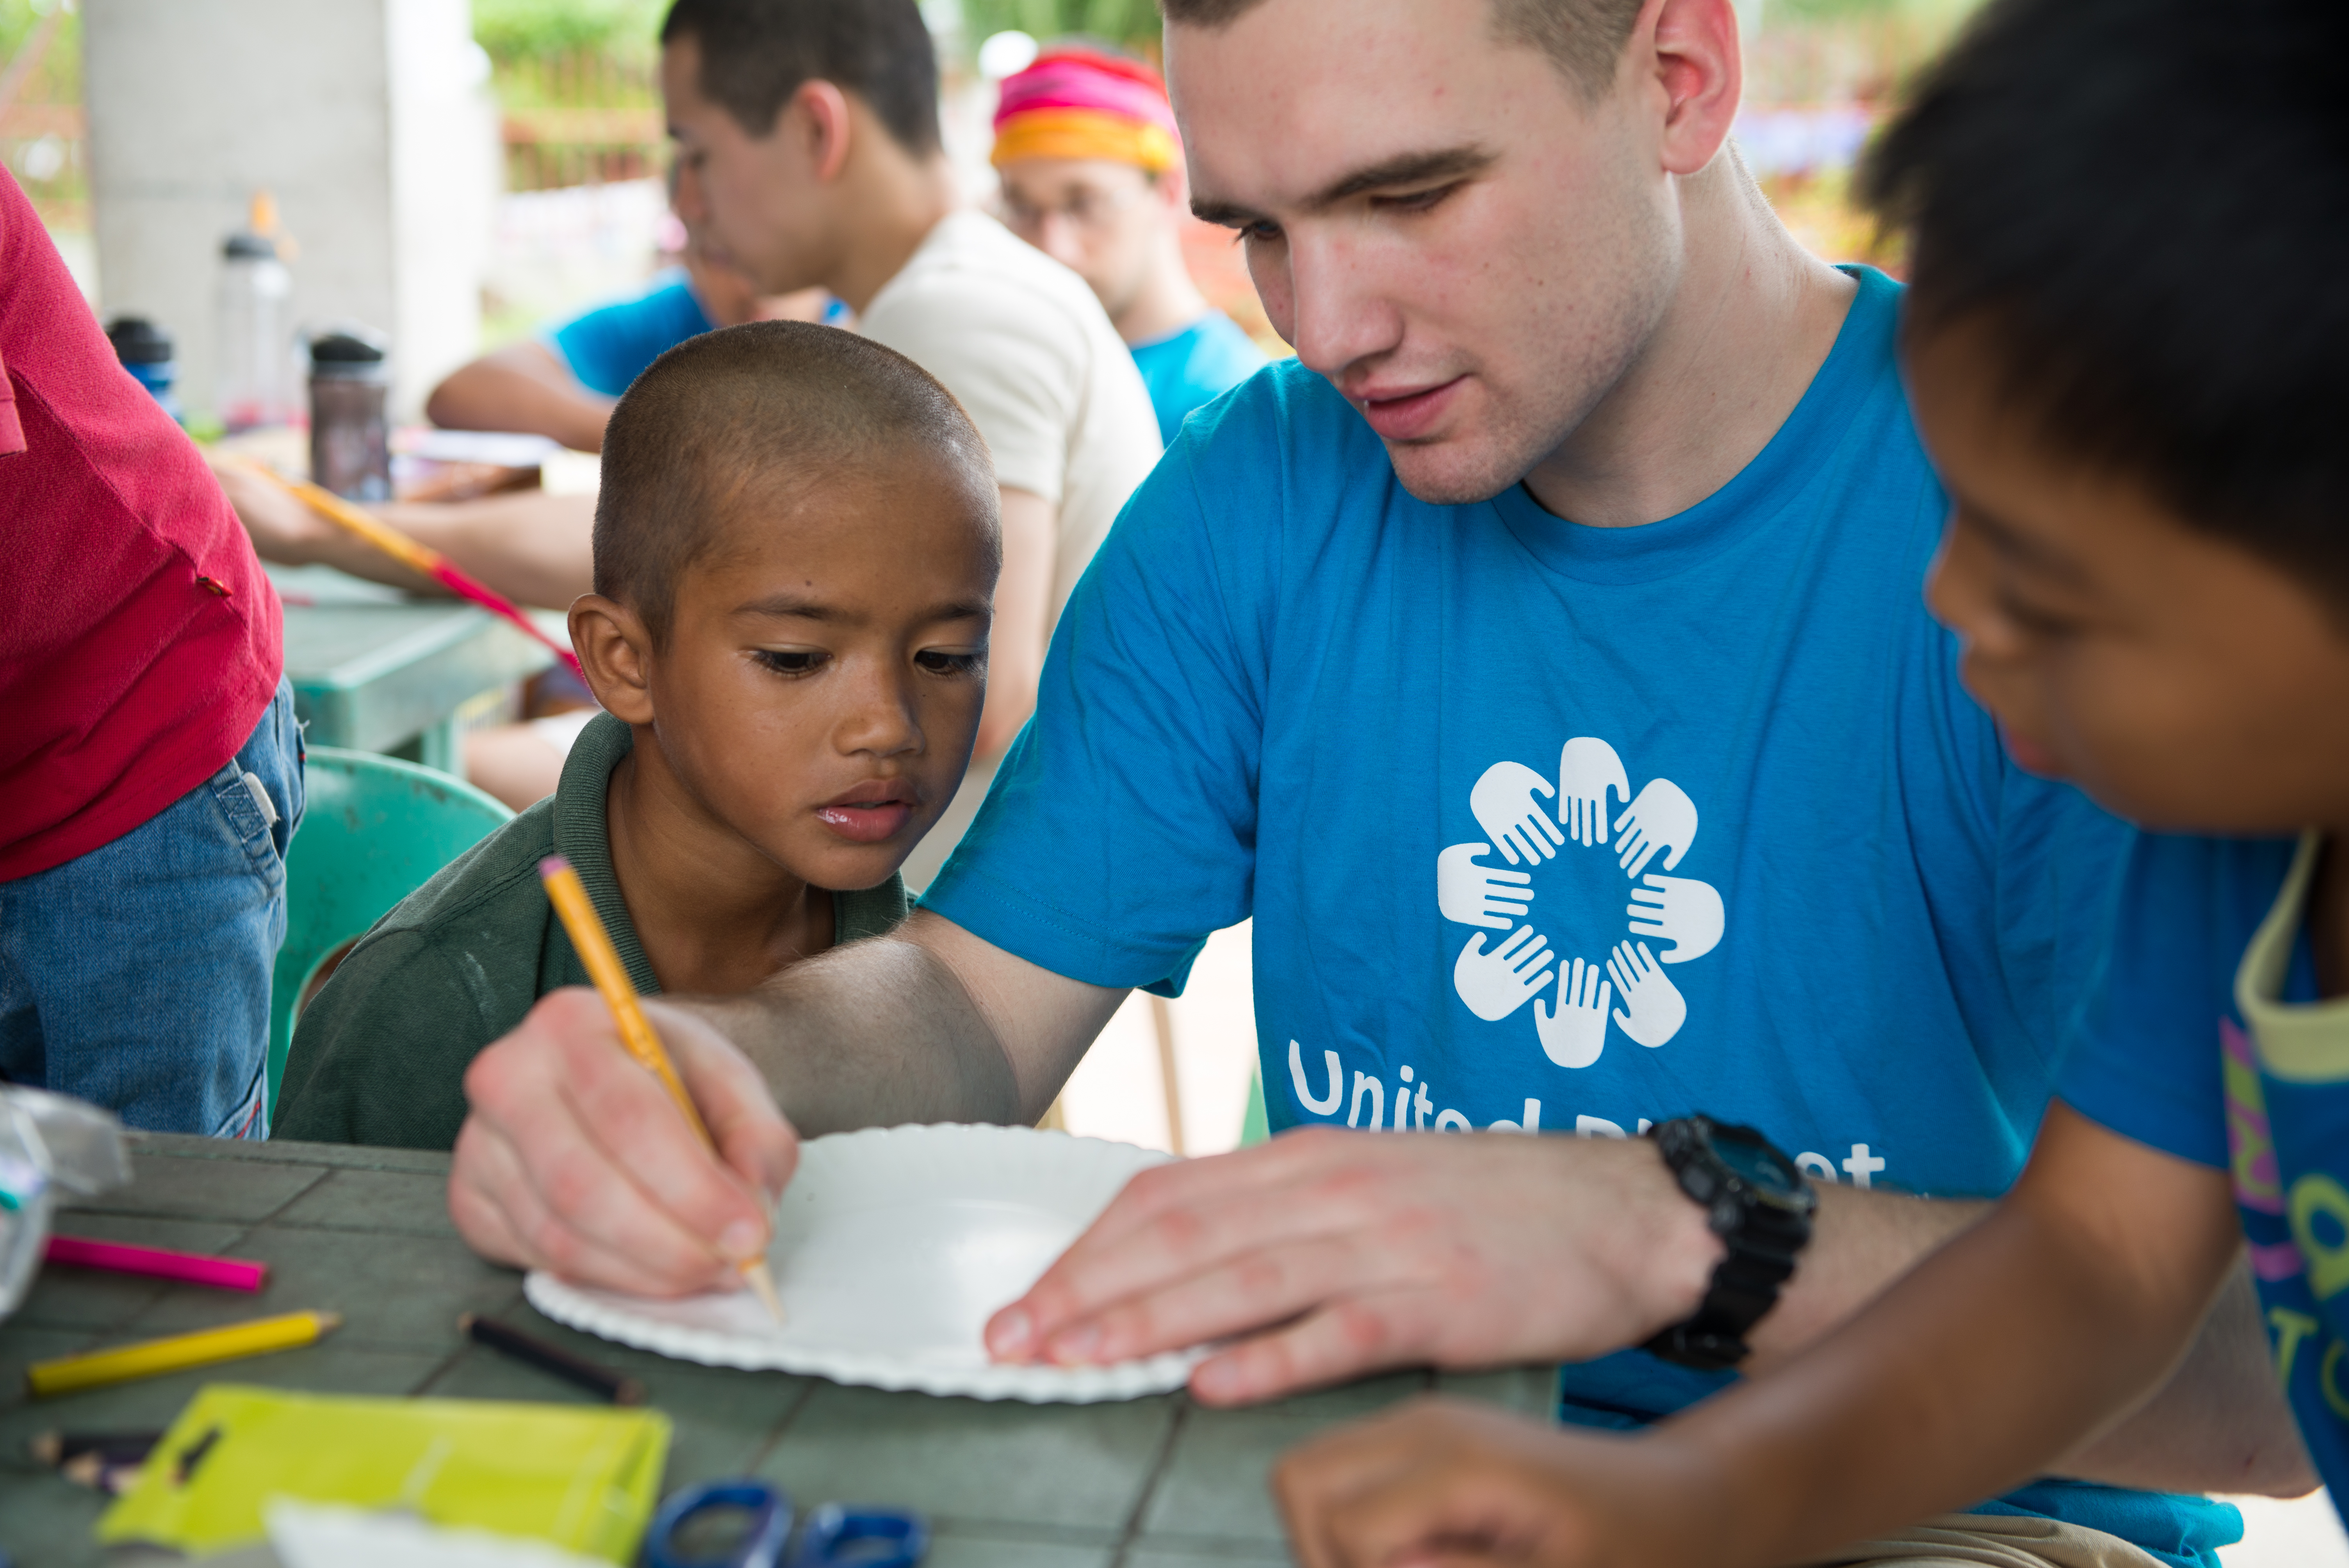 Gap Year Program - United Planet's GAP YEAR and Volunteer Abroad Opportunities  7